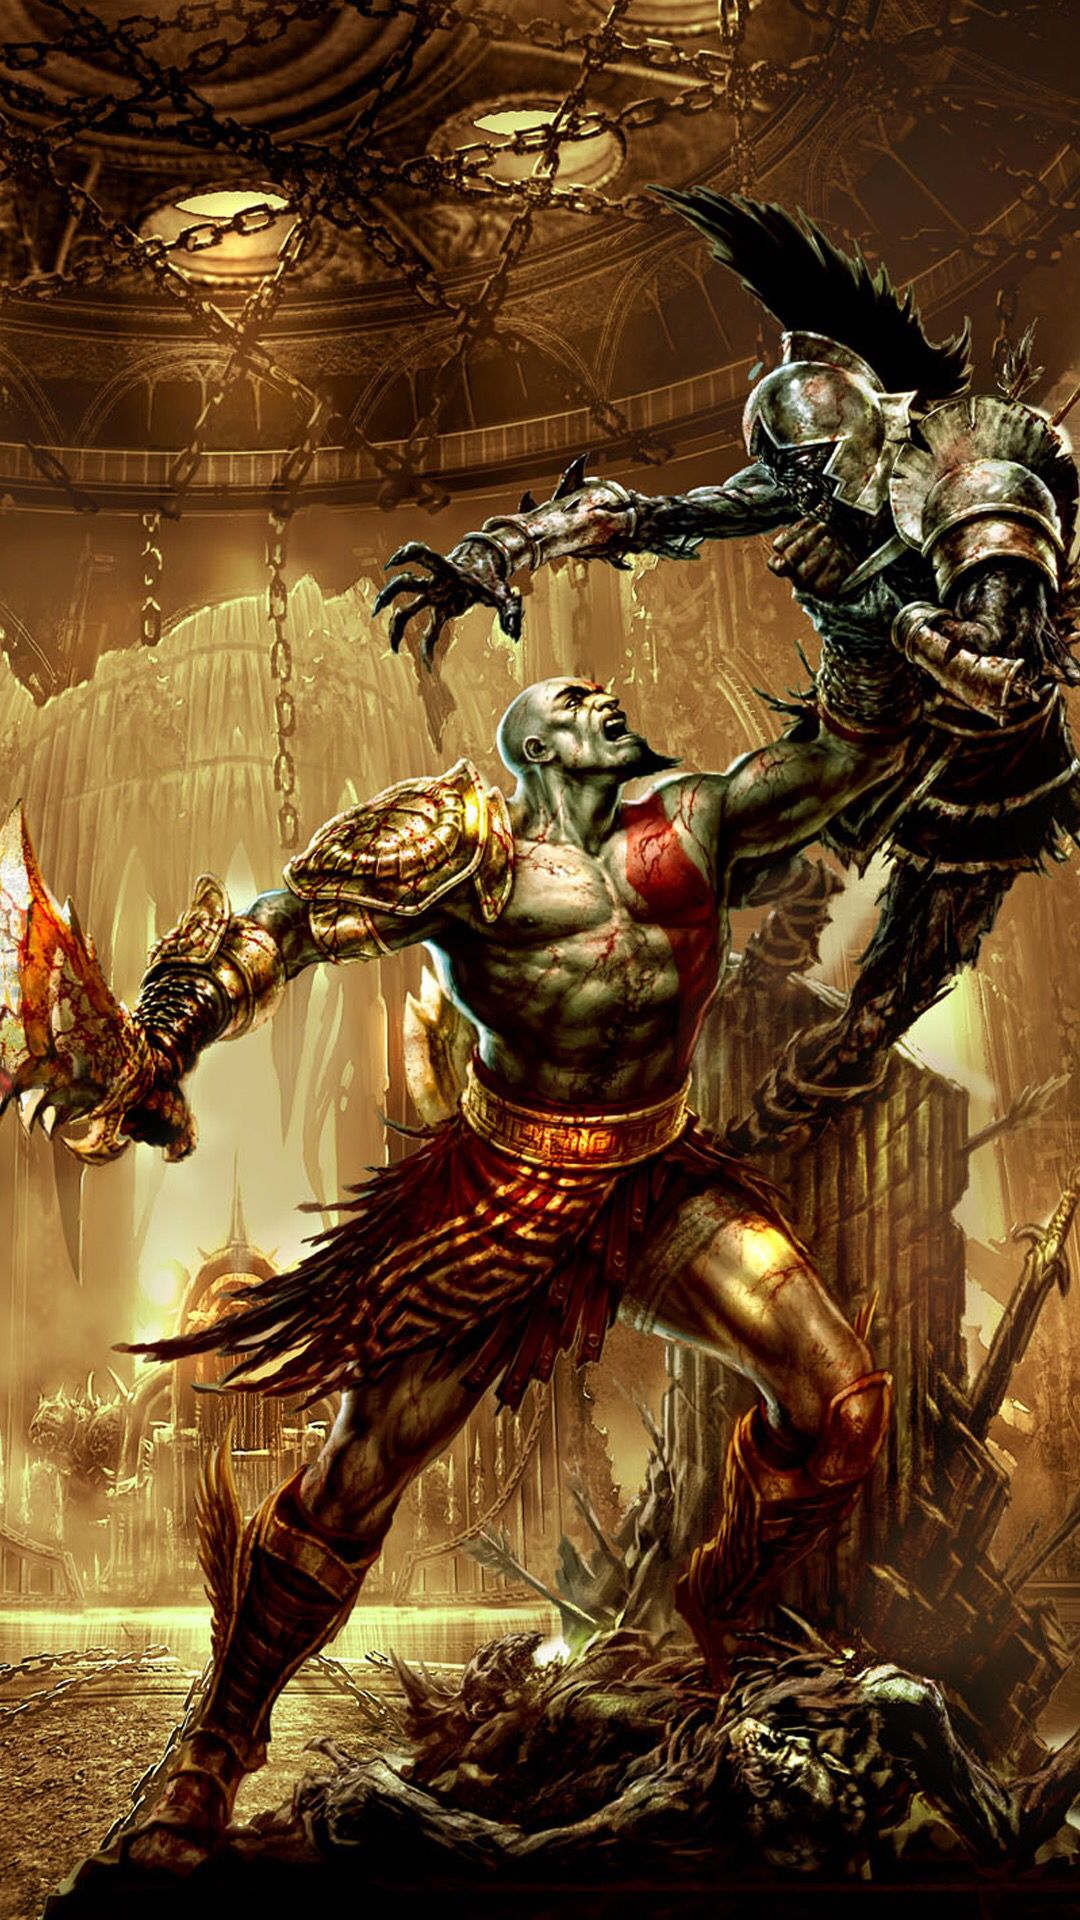 Iphone 6 Plus Wallpaper In 2019 Kratos God Of War God Of